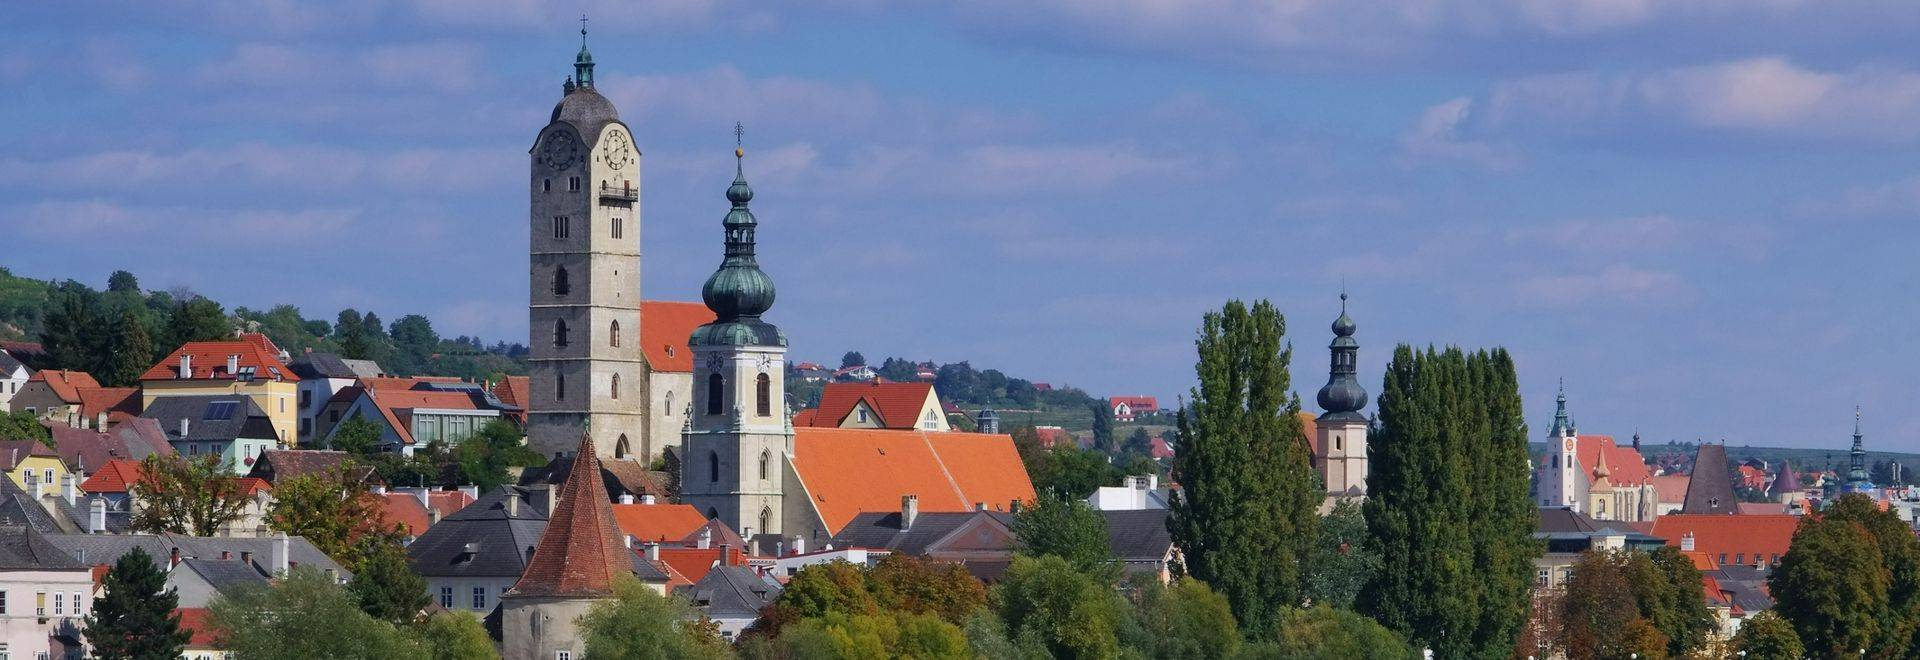 Krems and Stein on Danube river